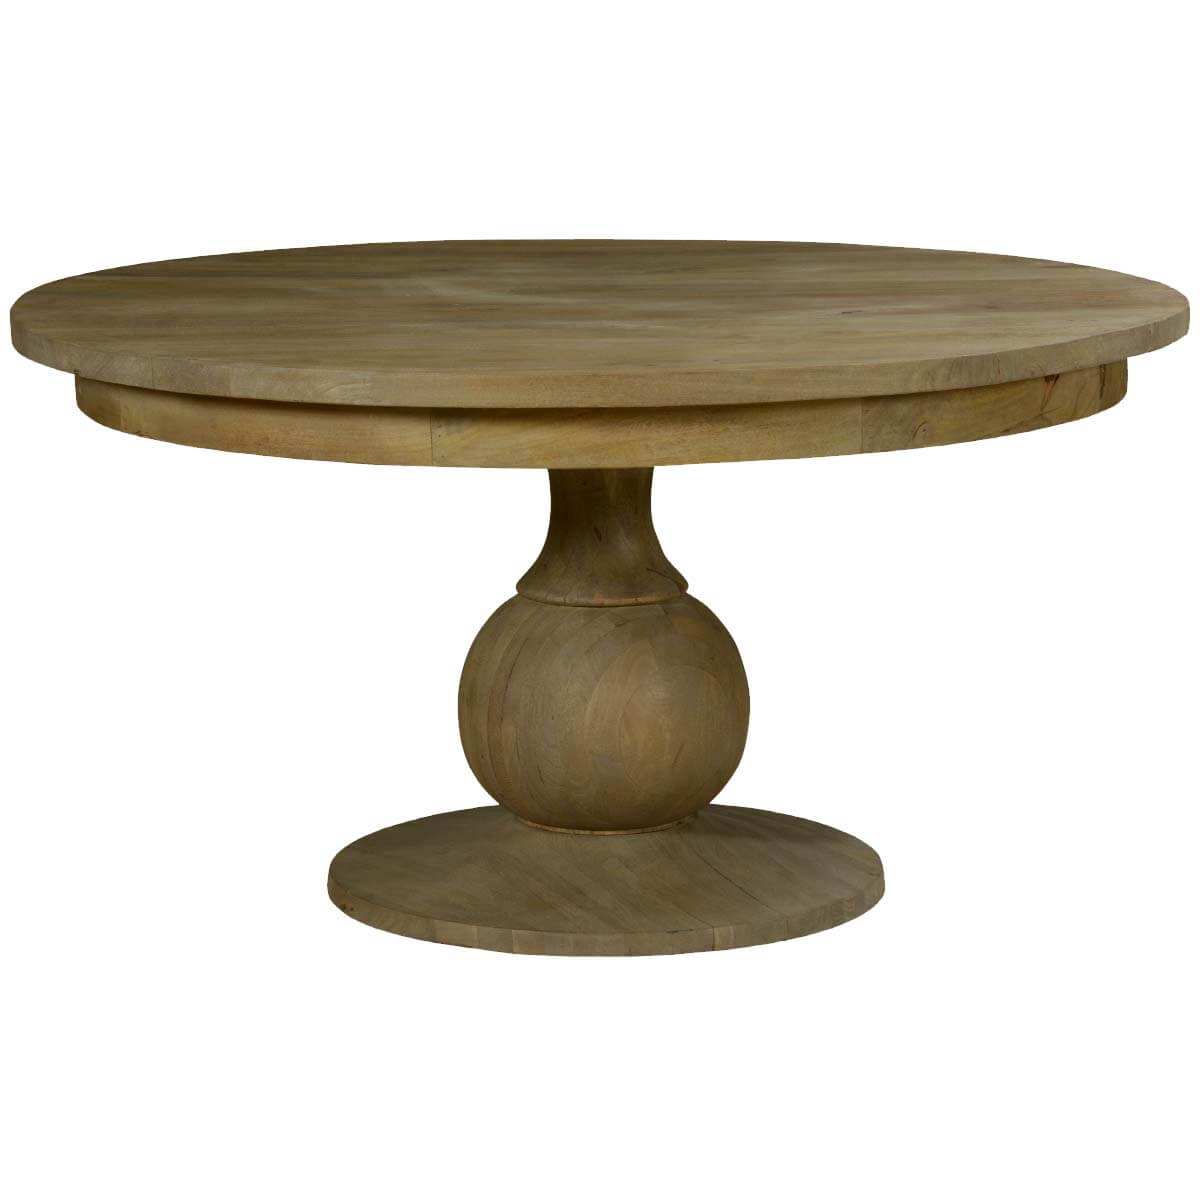 Smokey tan solid mango wood 60 round pedestal dining table for Pedestal dining table